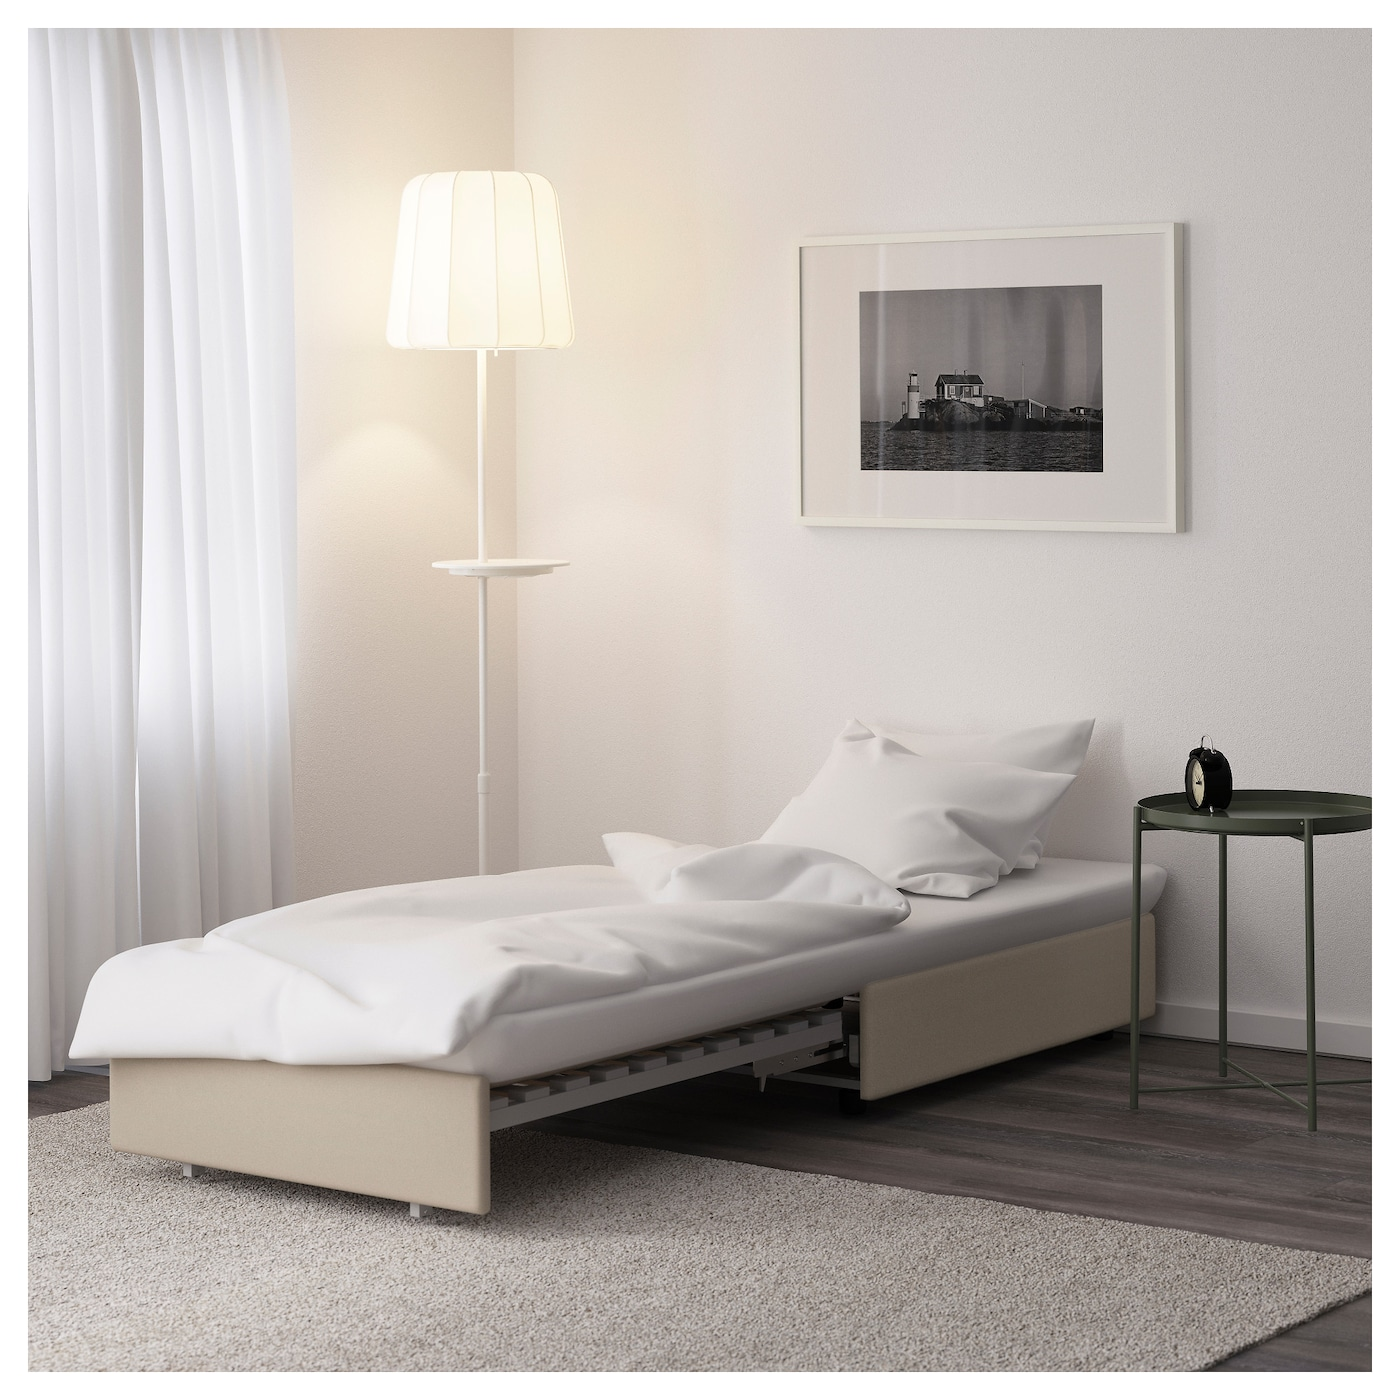 IKEA VALLENTUNA seat module with bed Readily converts into a bed.